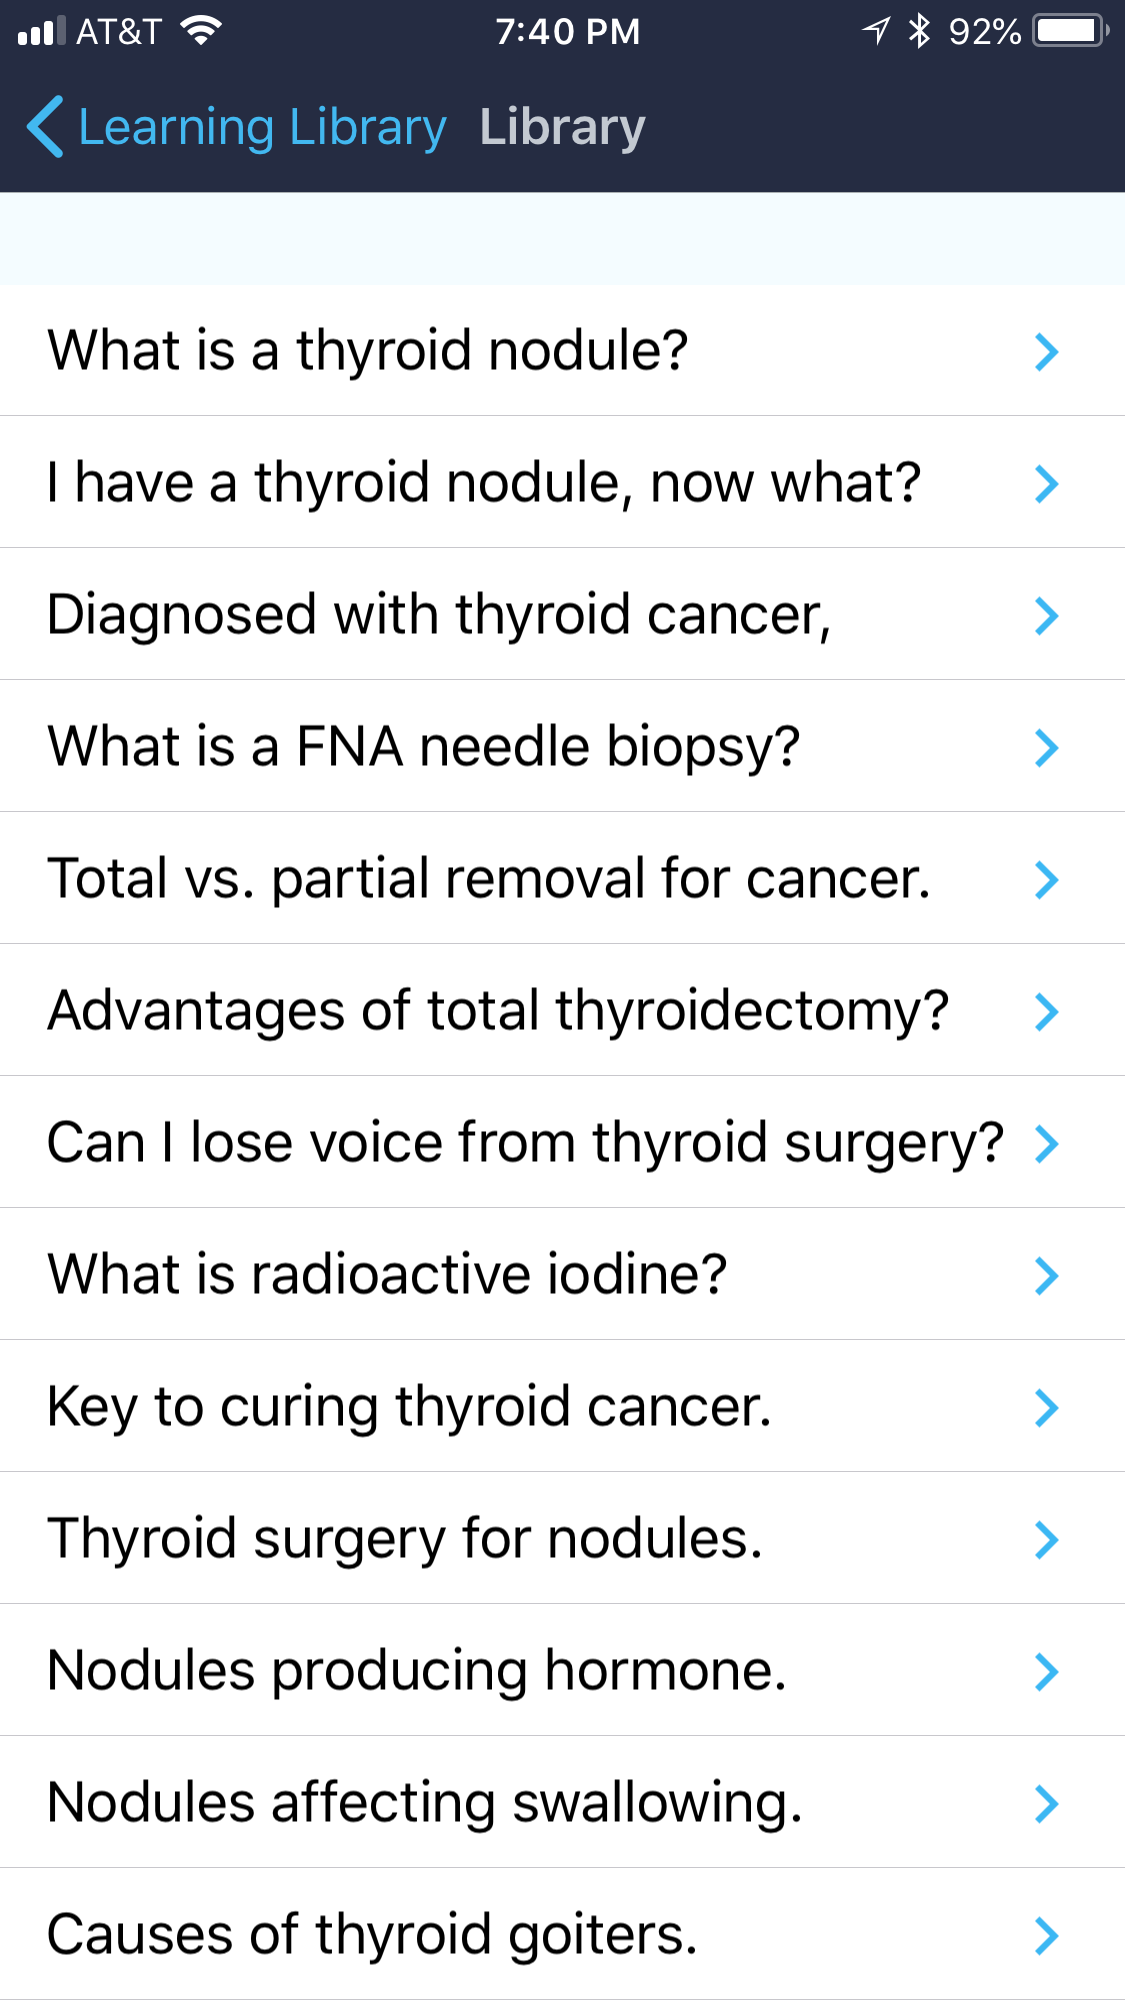 Clayman Thyroid Center App